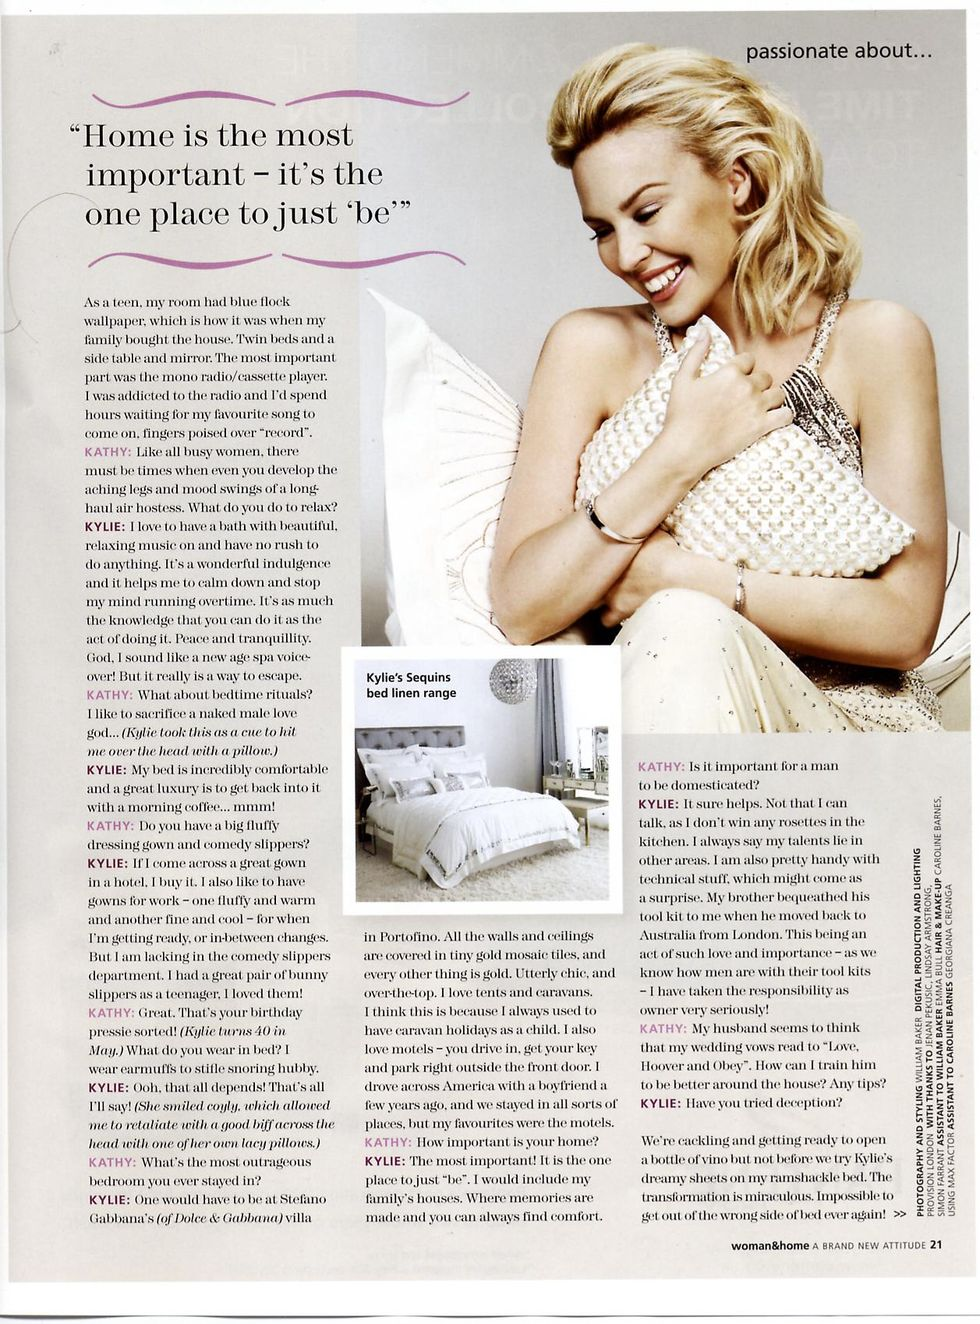 kylie-minogue-woman-home-magazine-march-2008-01